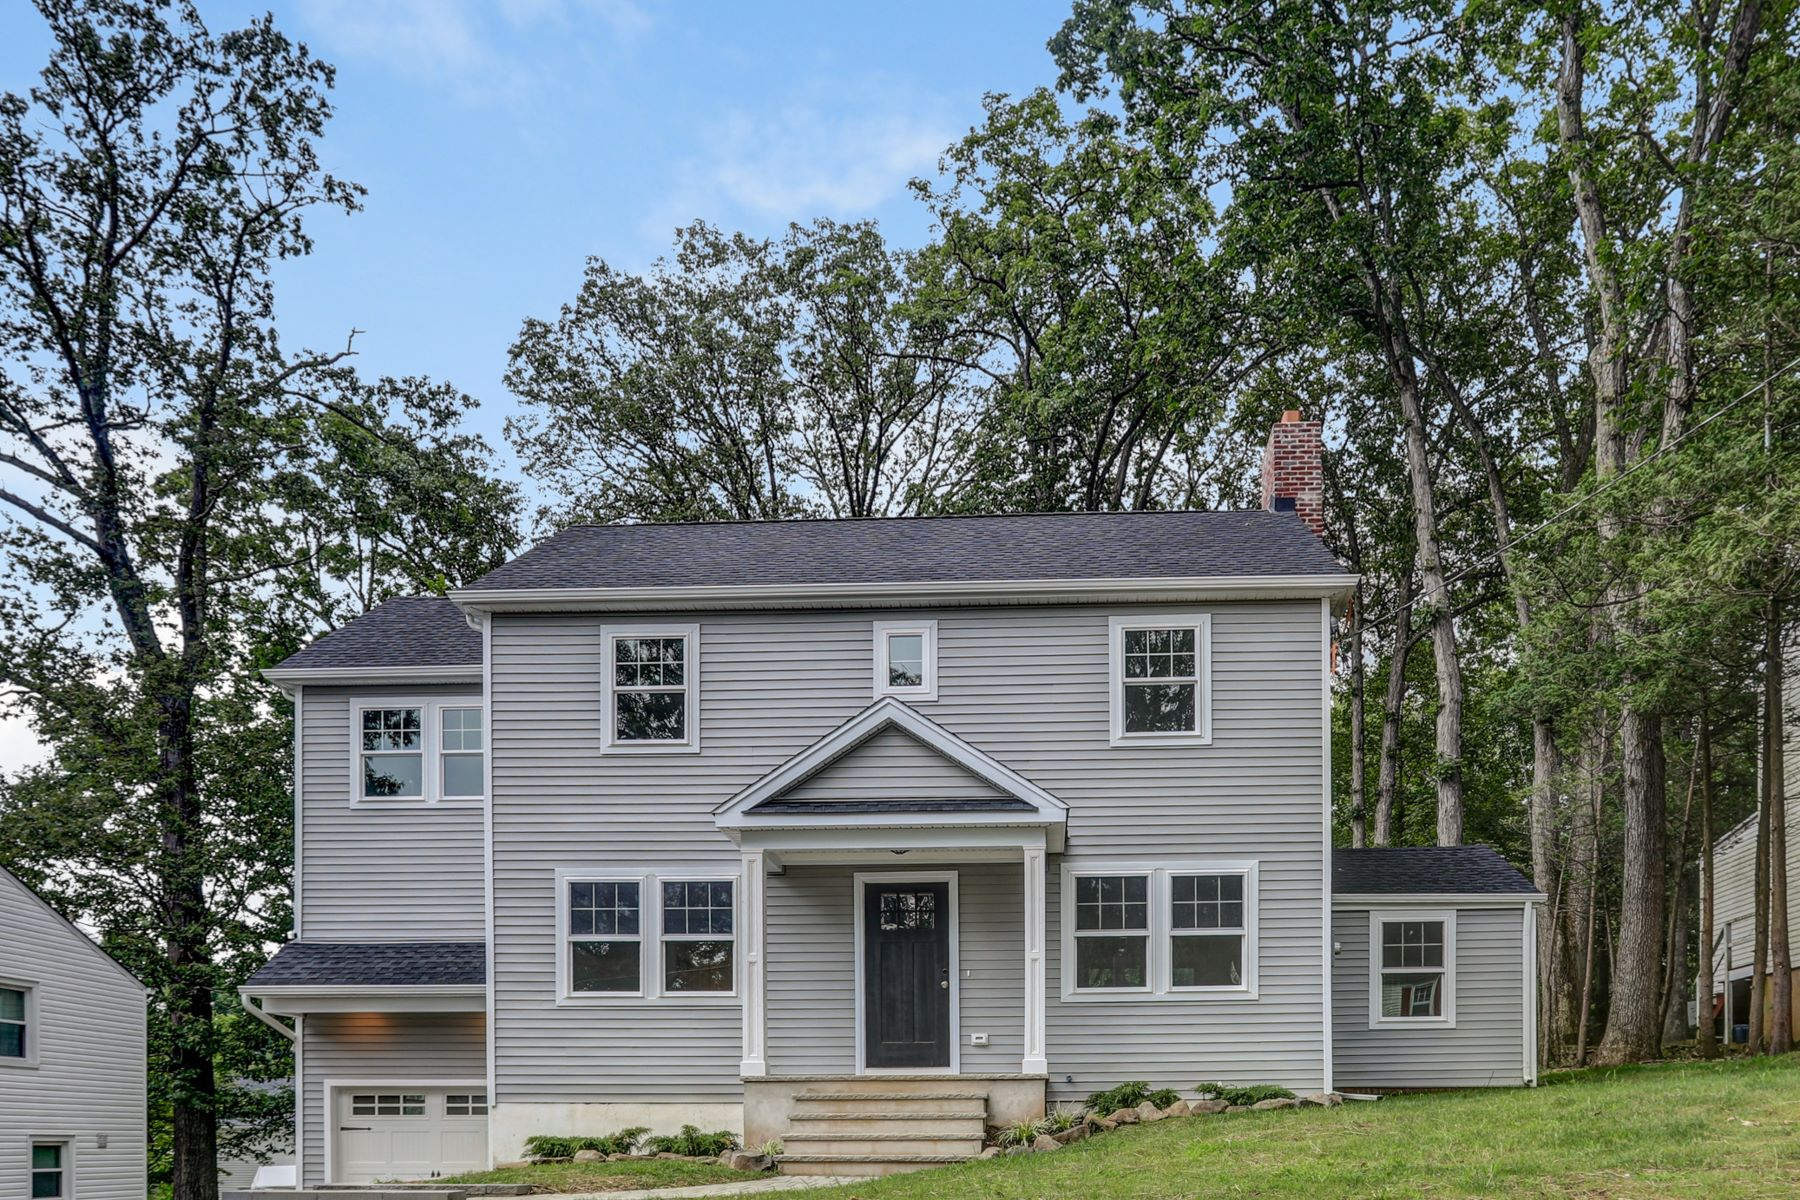 Single Family Homes for Sale at Move-In Ready 24 West Lawn Road Livingston, New Jersey 07039 United States